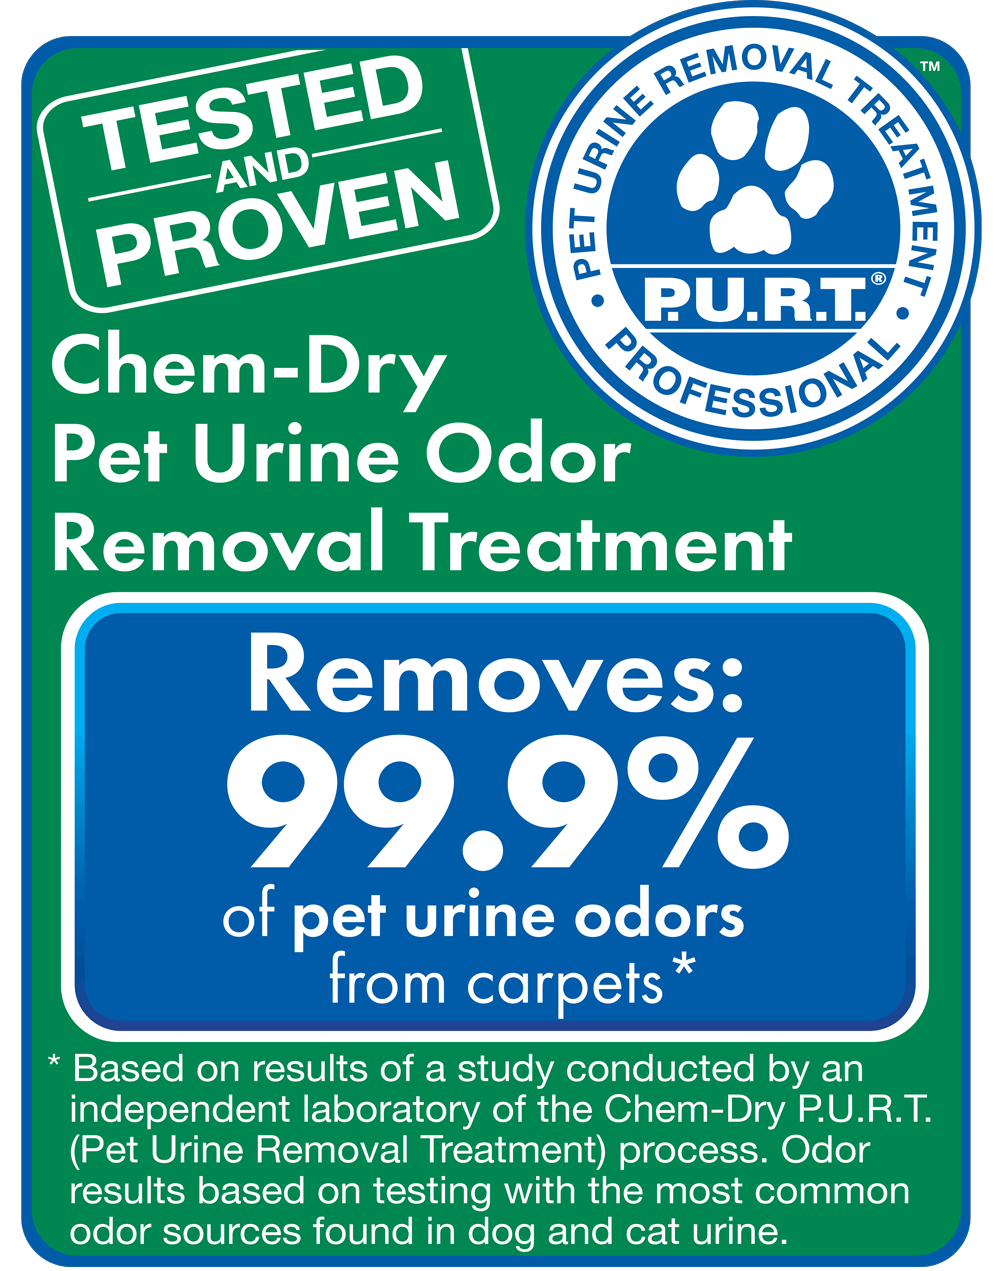 chem dry removes 99.9% of odors and 99.2% of bacteria from pet urine in carpets